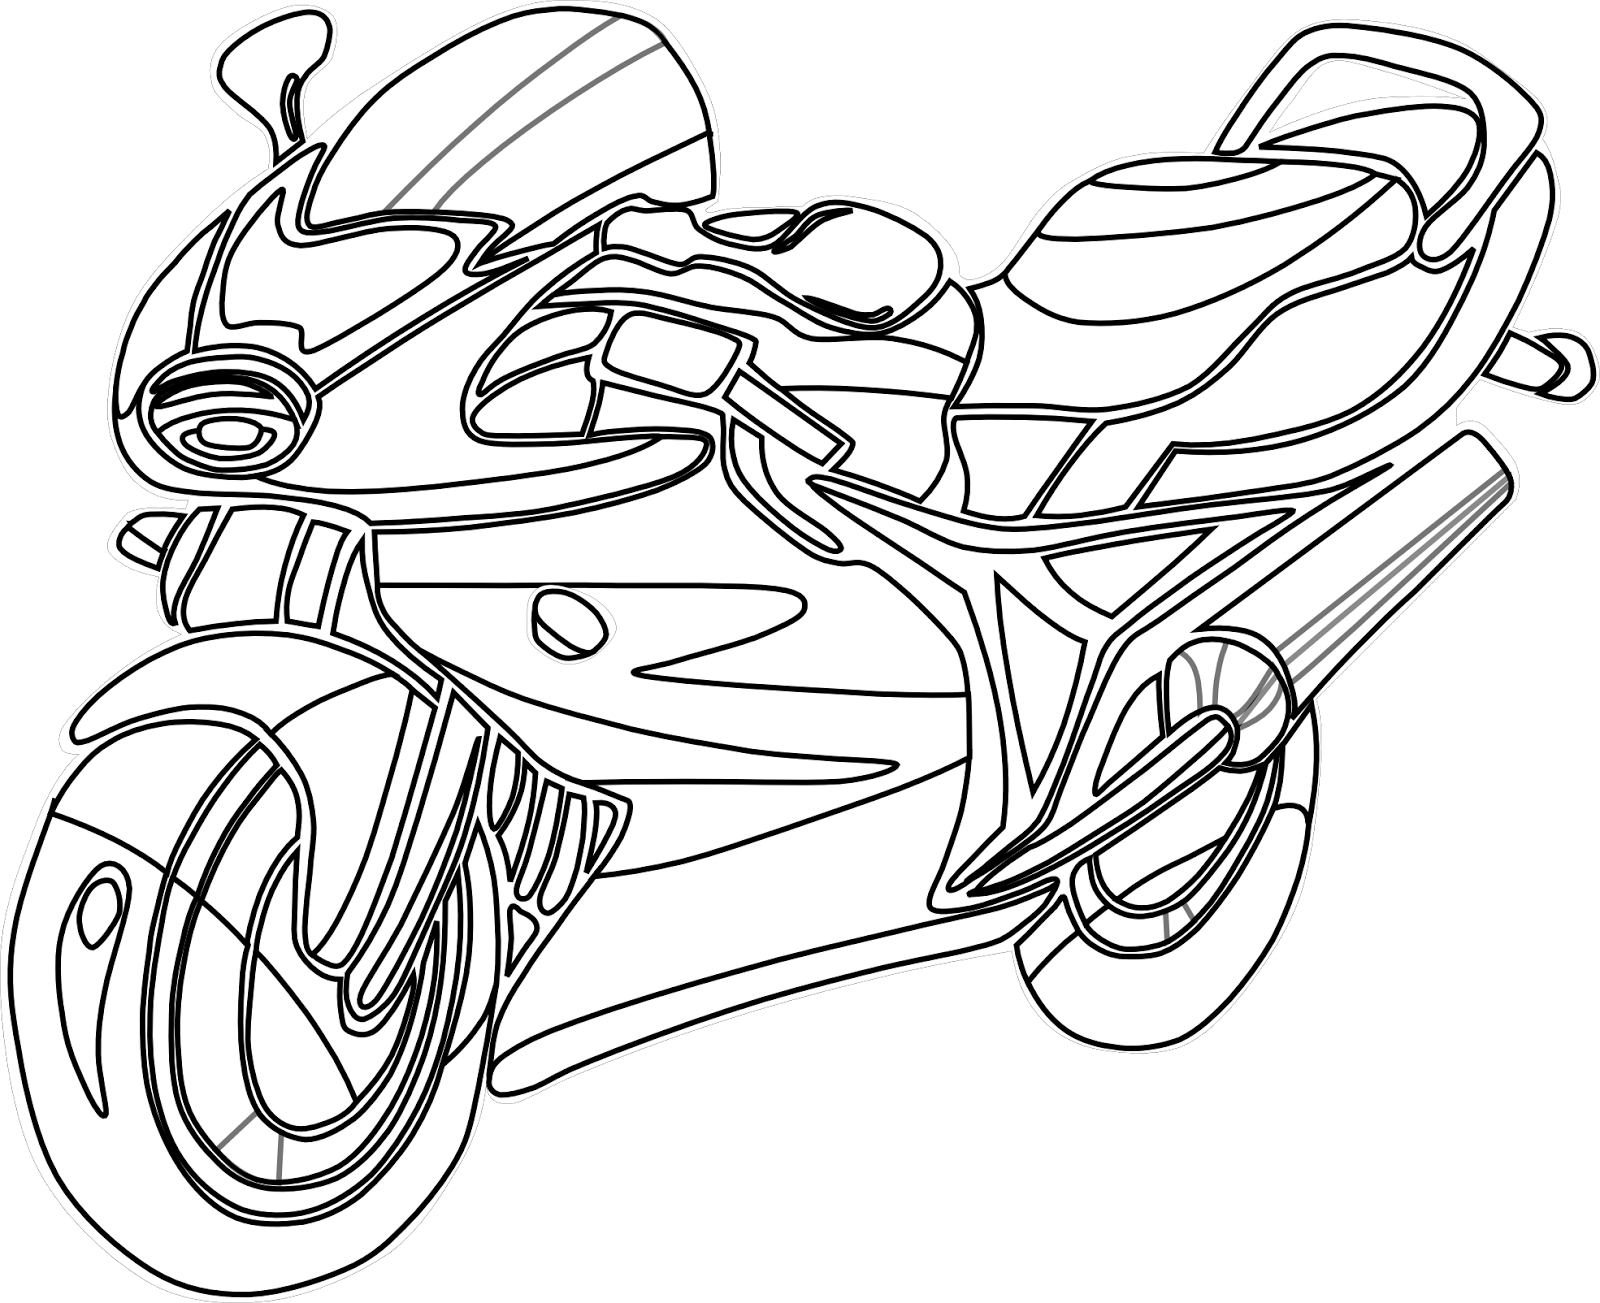 Motorcycle Coloring Drawing Free Wallpaper Anggela Coloring Book